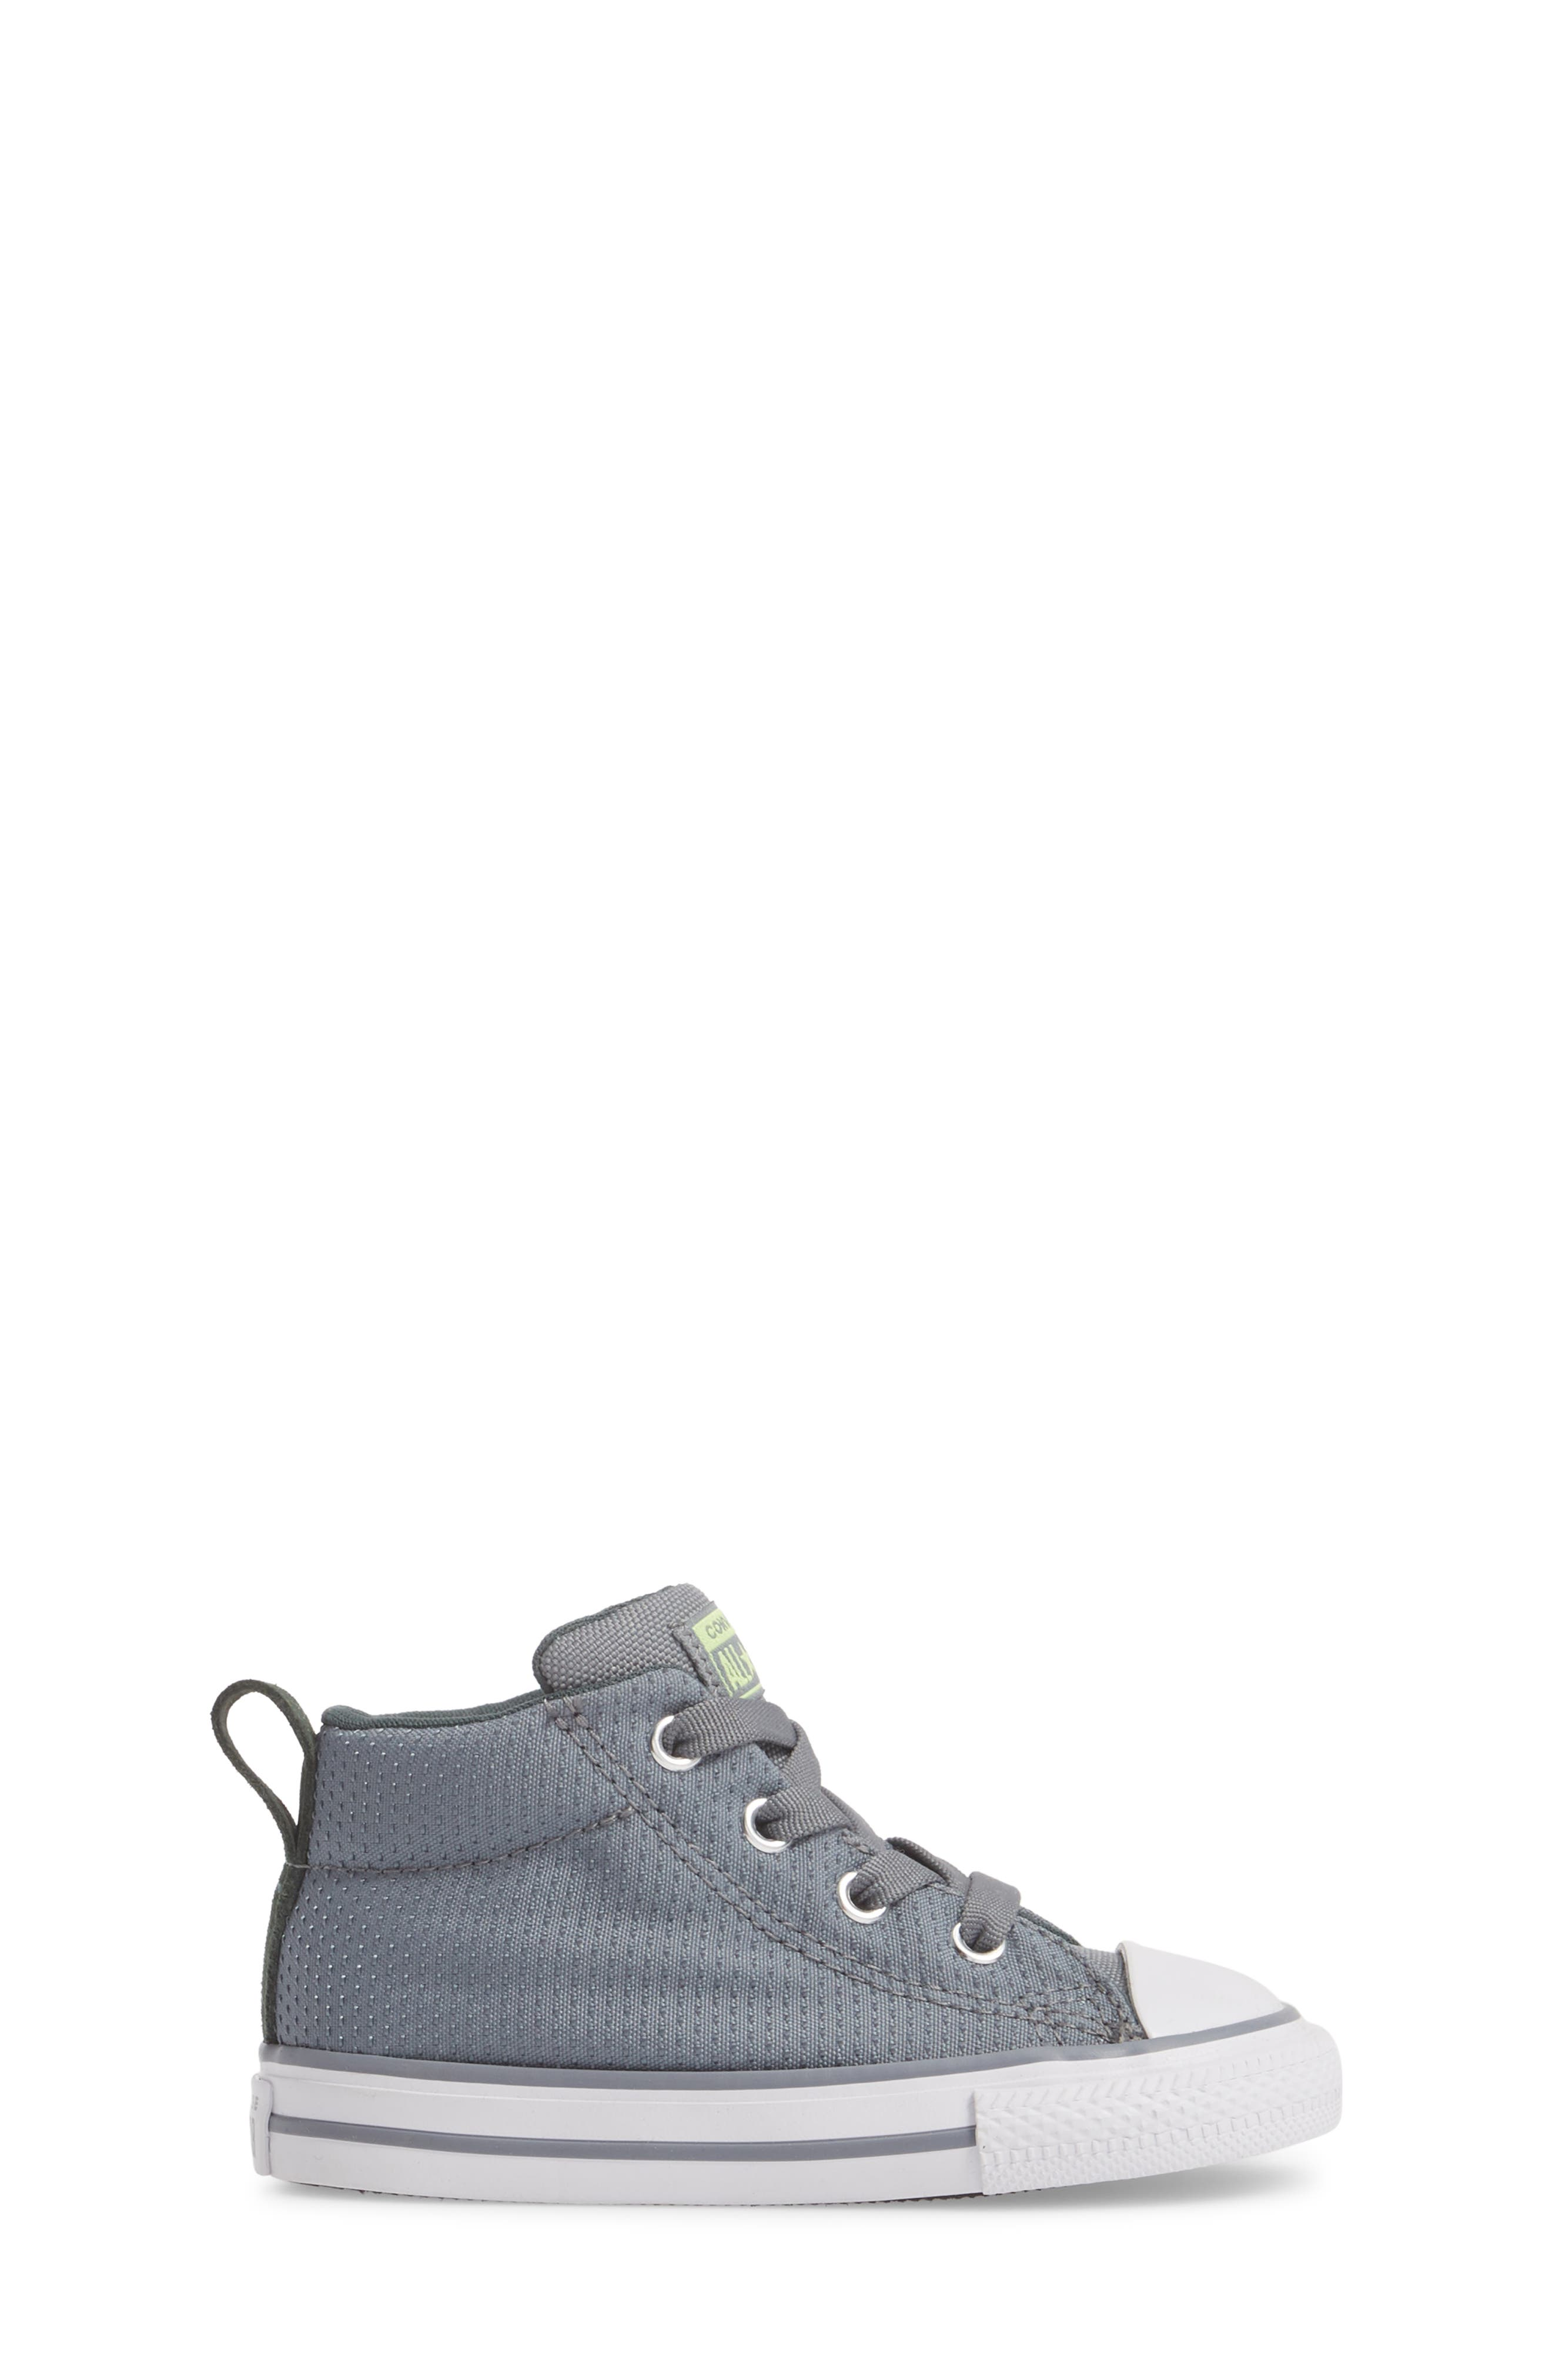 Chuck Taylor<sup>®</sup> All Star<sup>®</sup> Street Mid Top Sneaker,                             Alternate thumbnail 3, color,                             PALE GREY